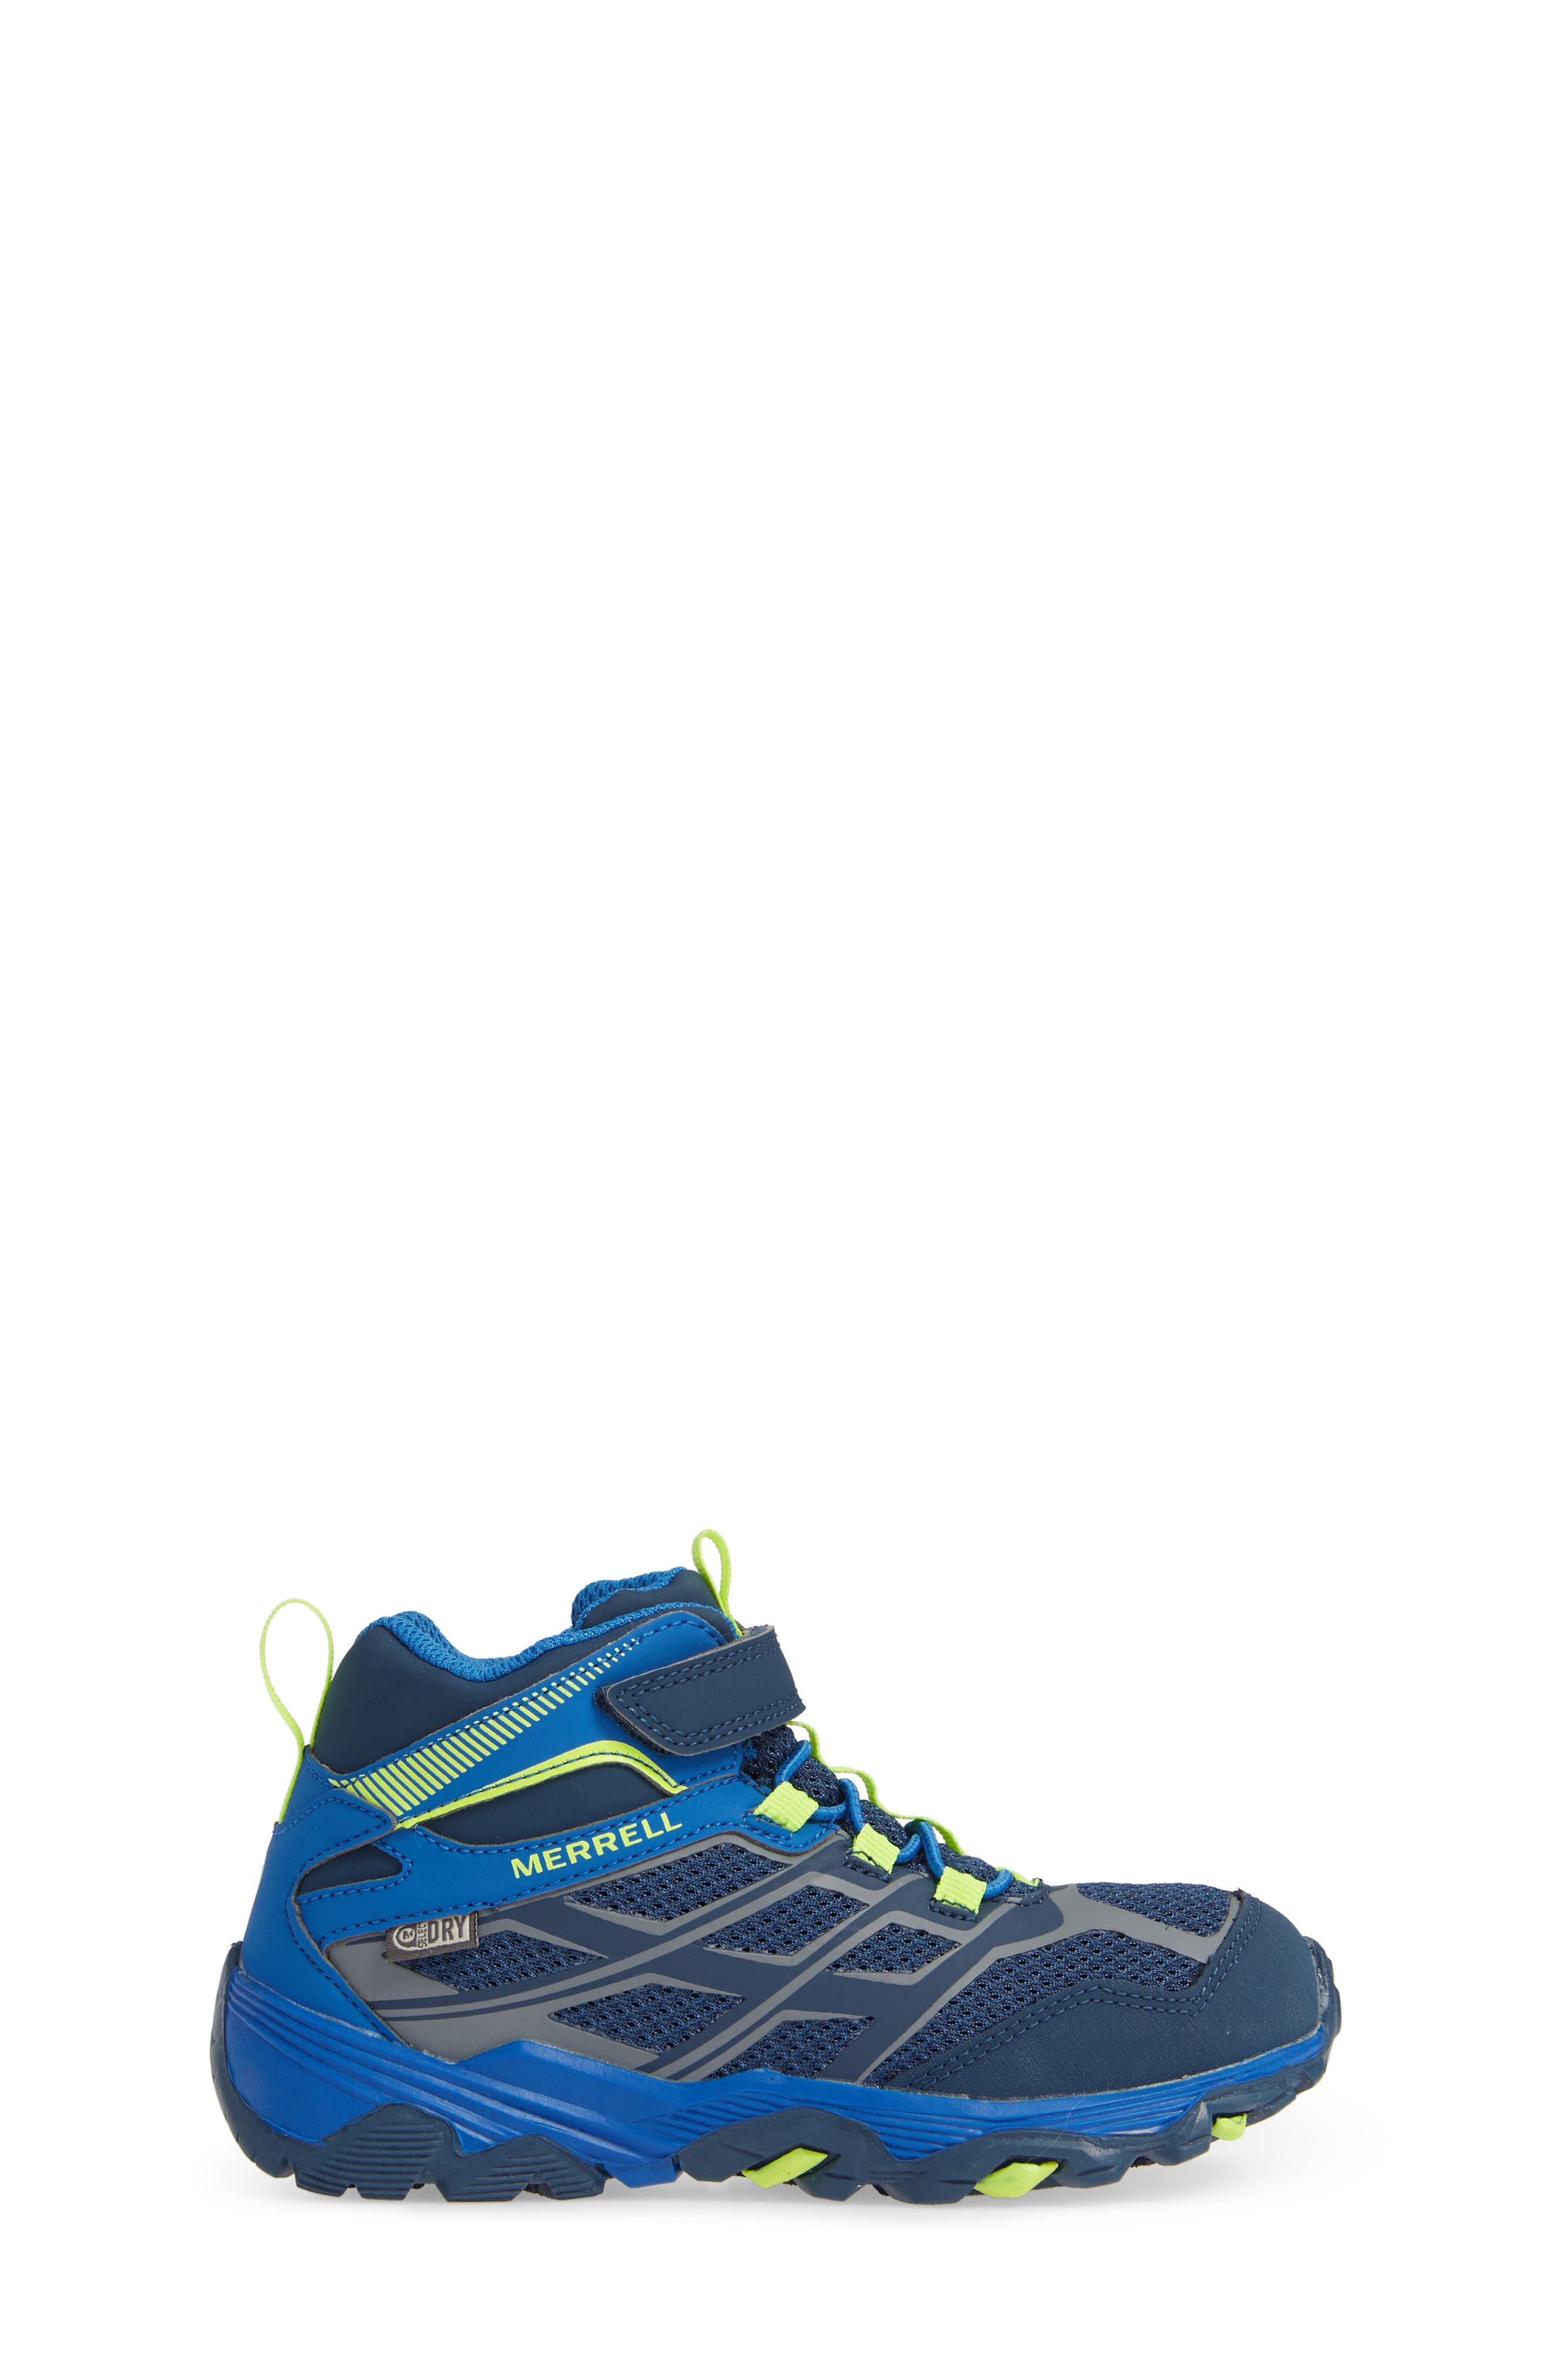 Moab FST Mid Top Waterproof Sneaker Boot,                             Alternate thumbnail 3, color,                             NAVY/ COBALT